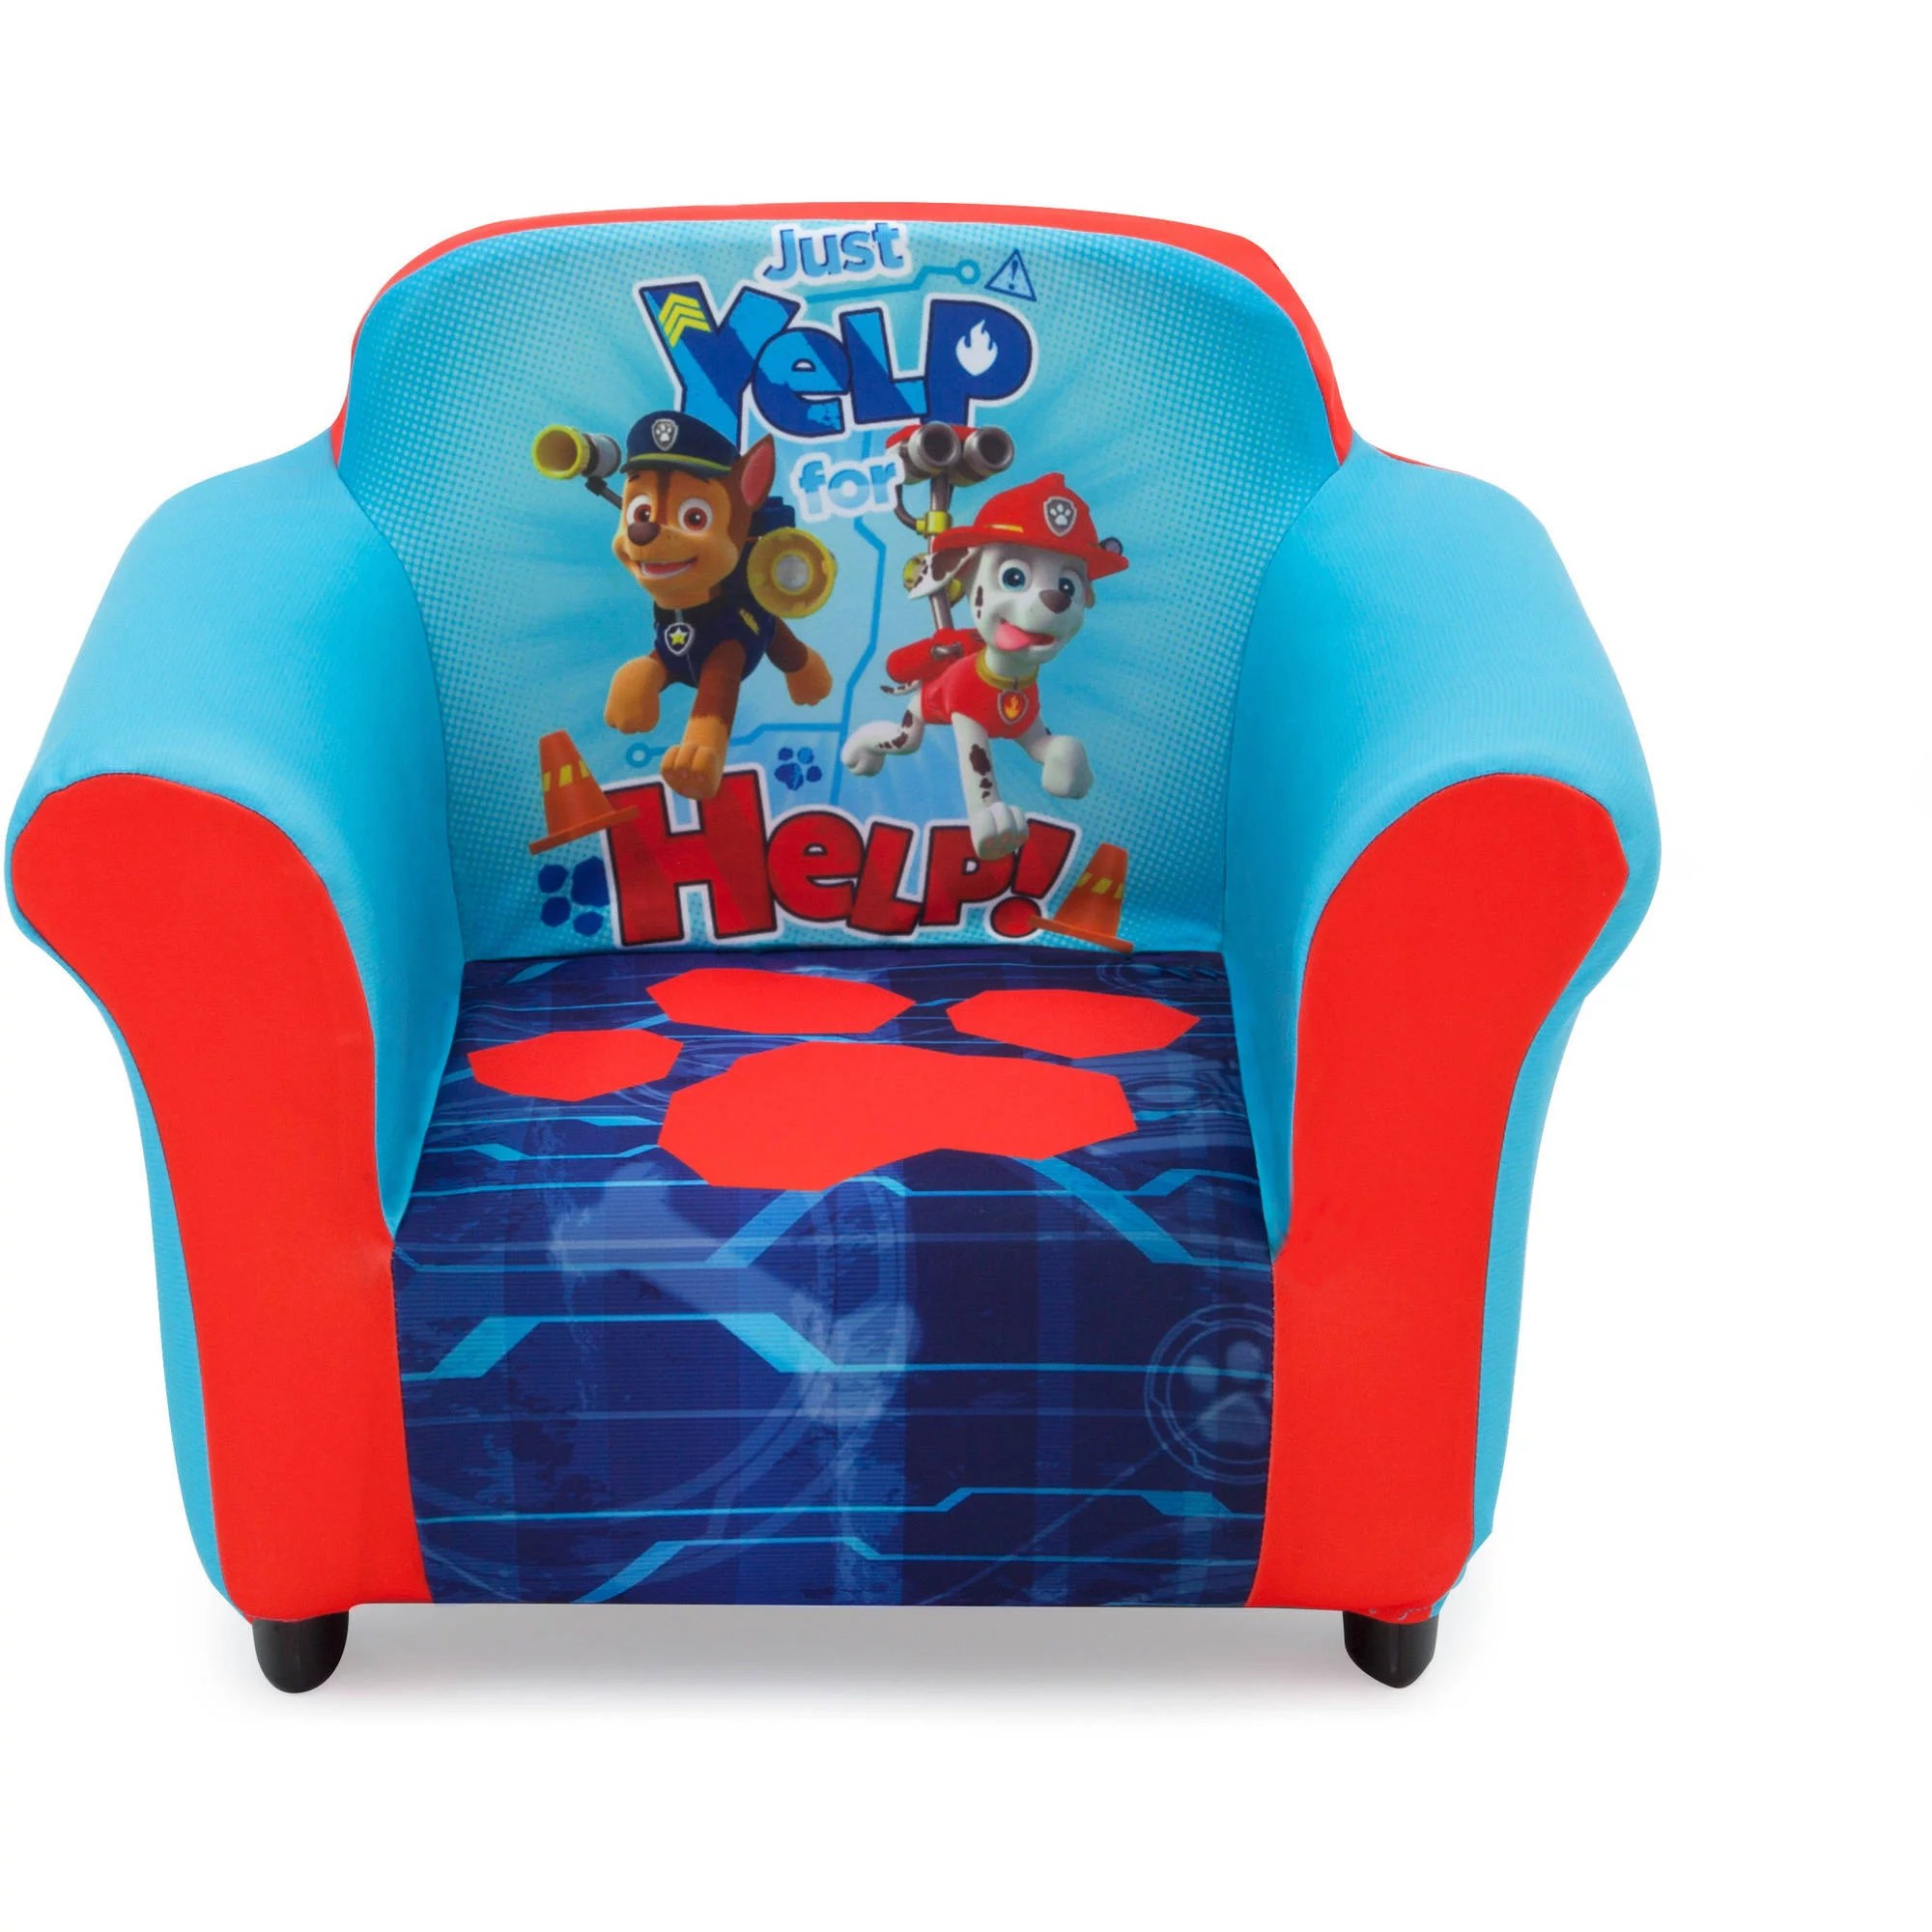 nick jr paw patrol kids upholstered chair with sculpted plastic frame by delta children